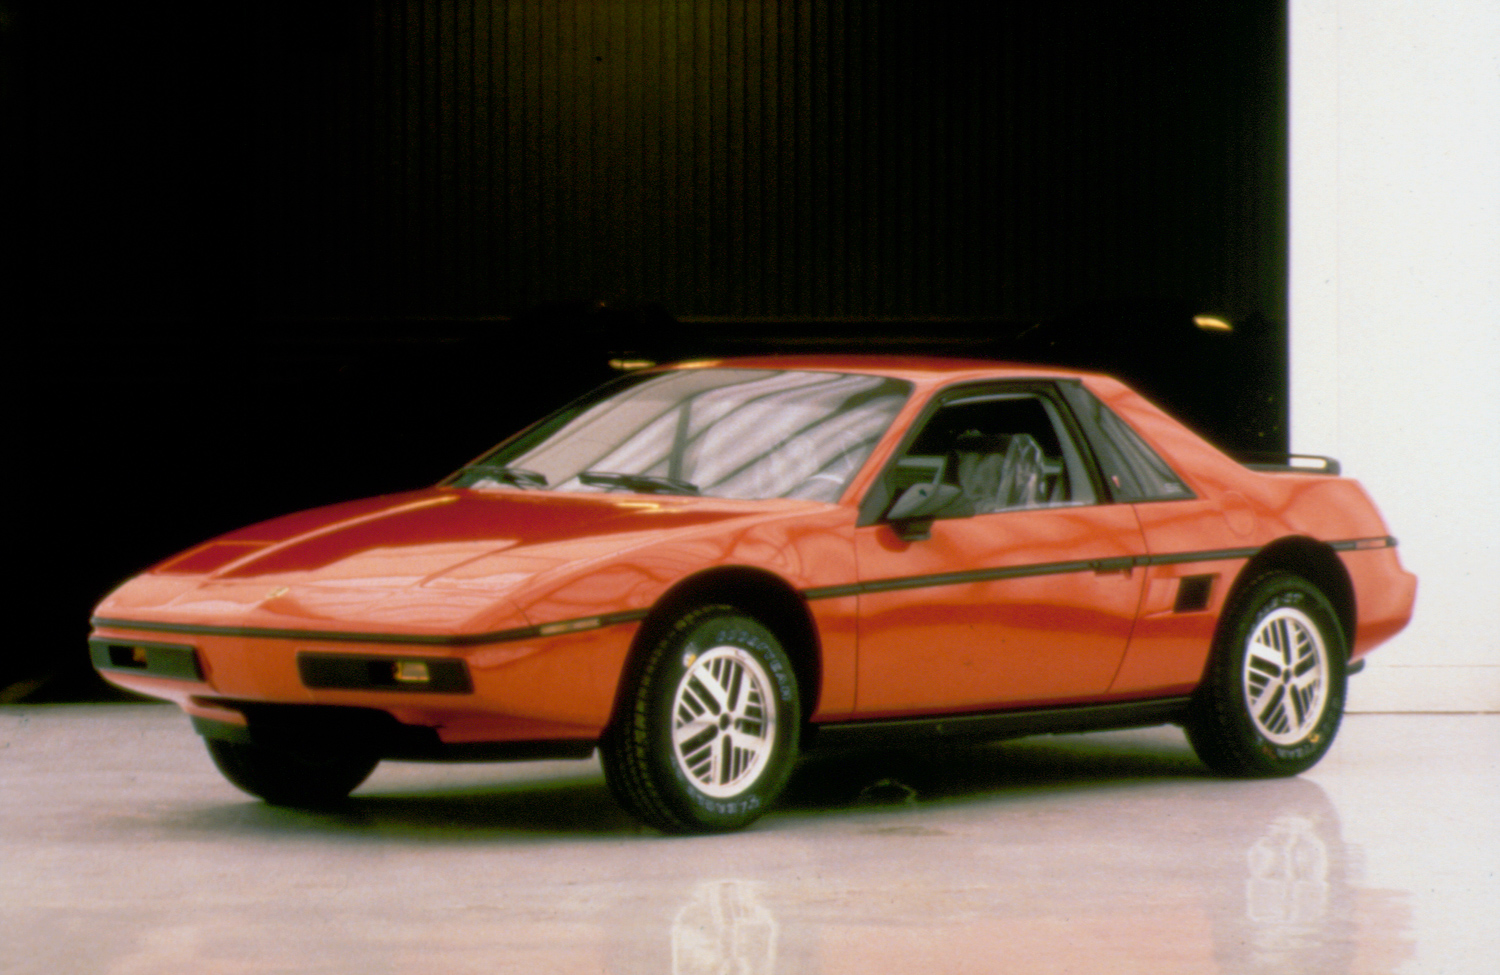 1984 Pontiac Fiero red front 3/4 view